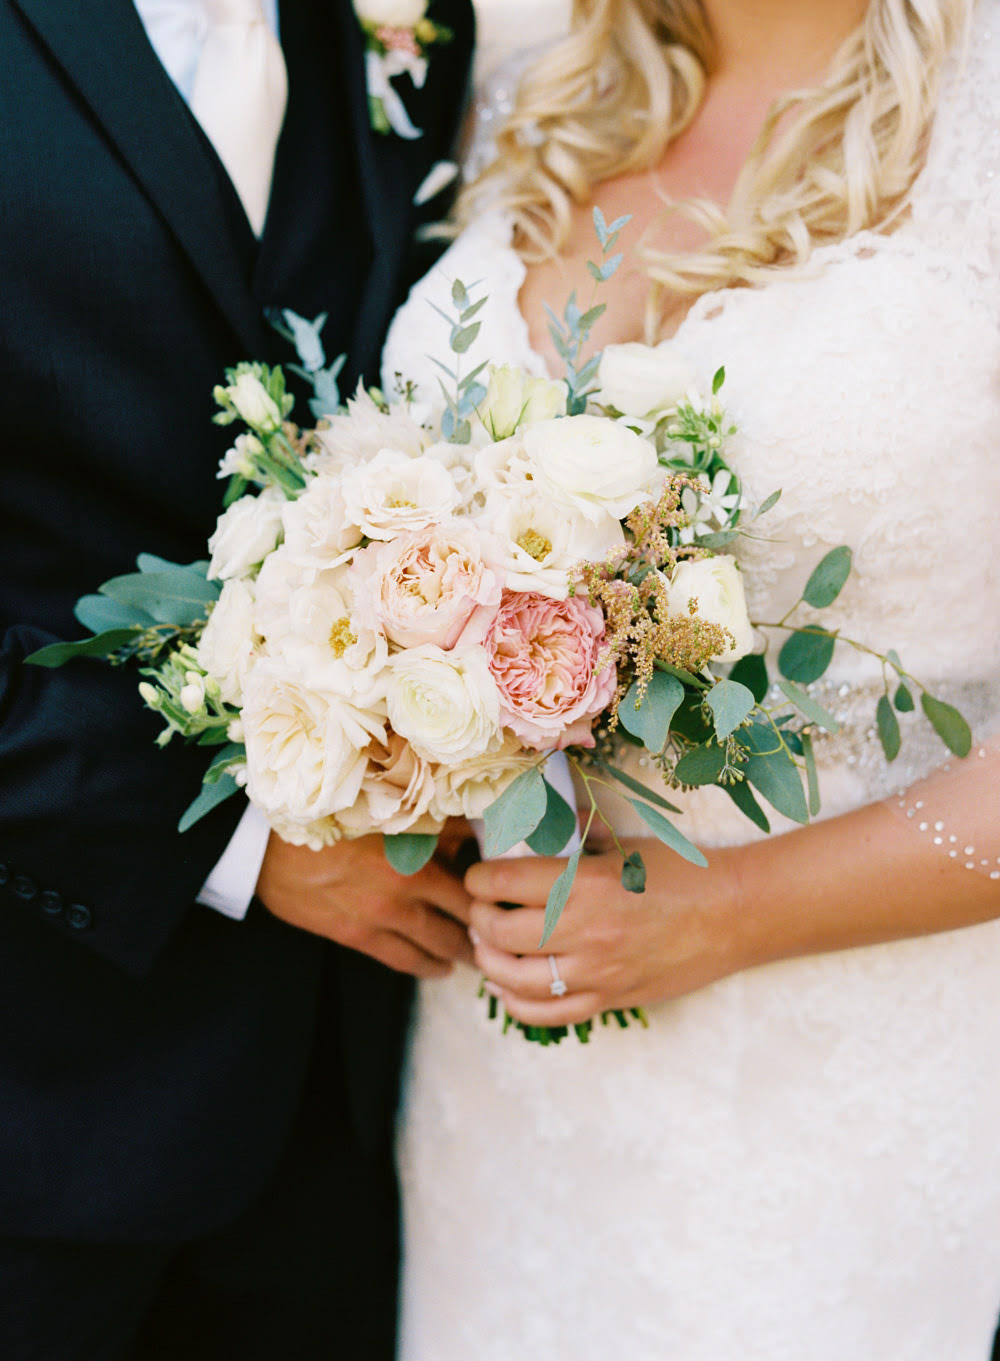 AugustVineyardWeddingBouquet.jpg